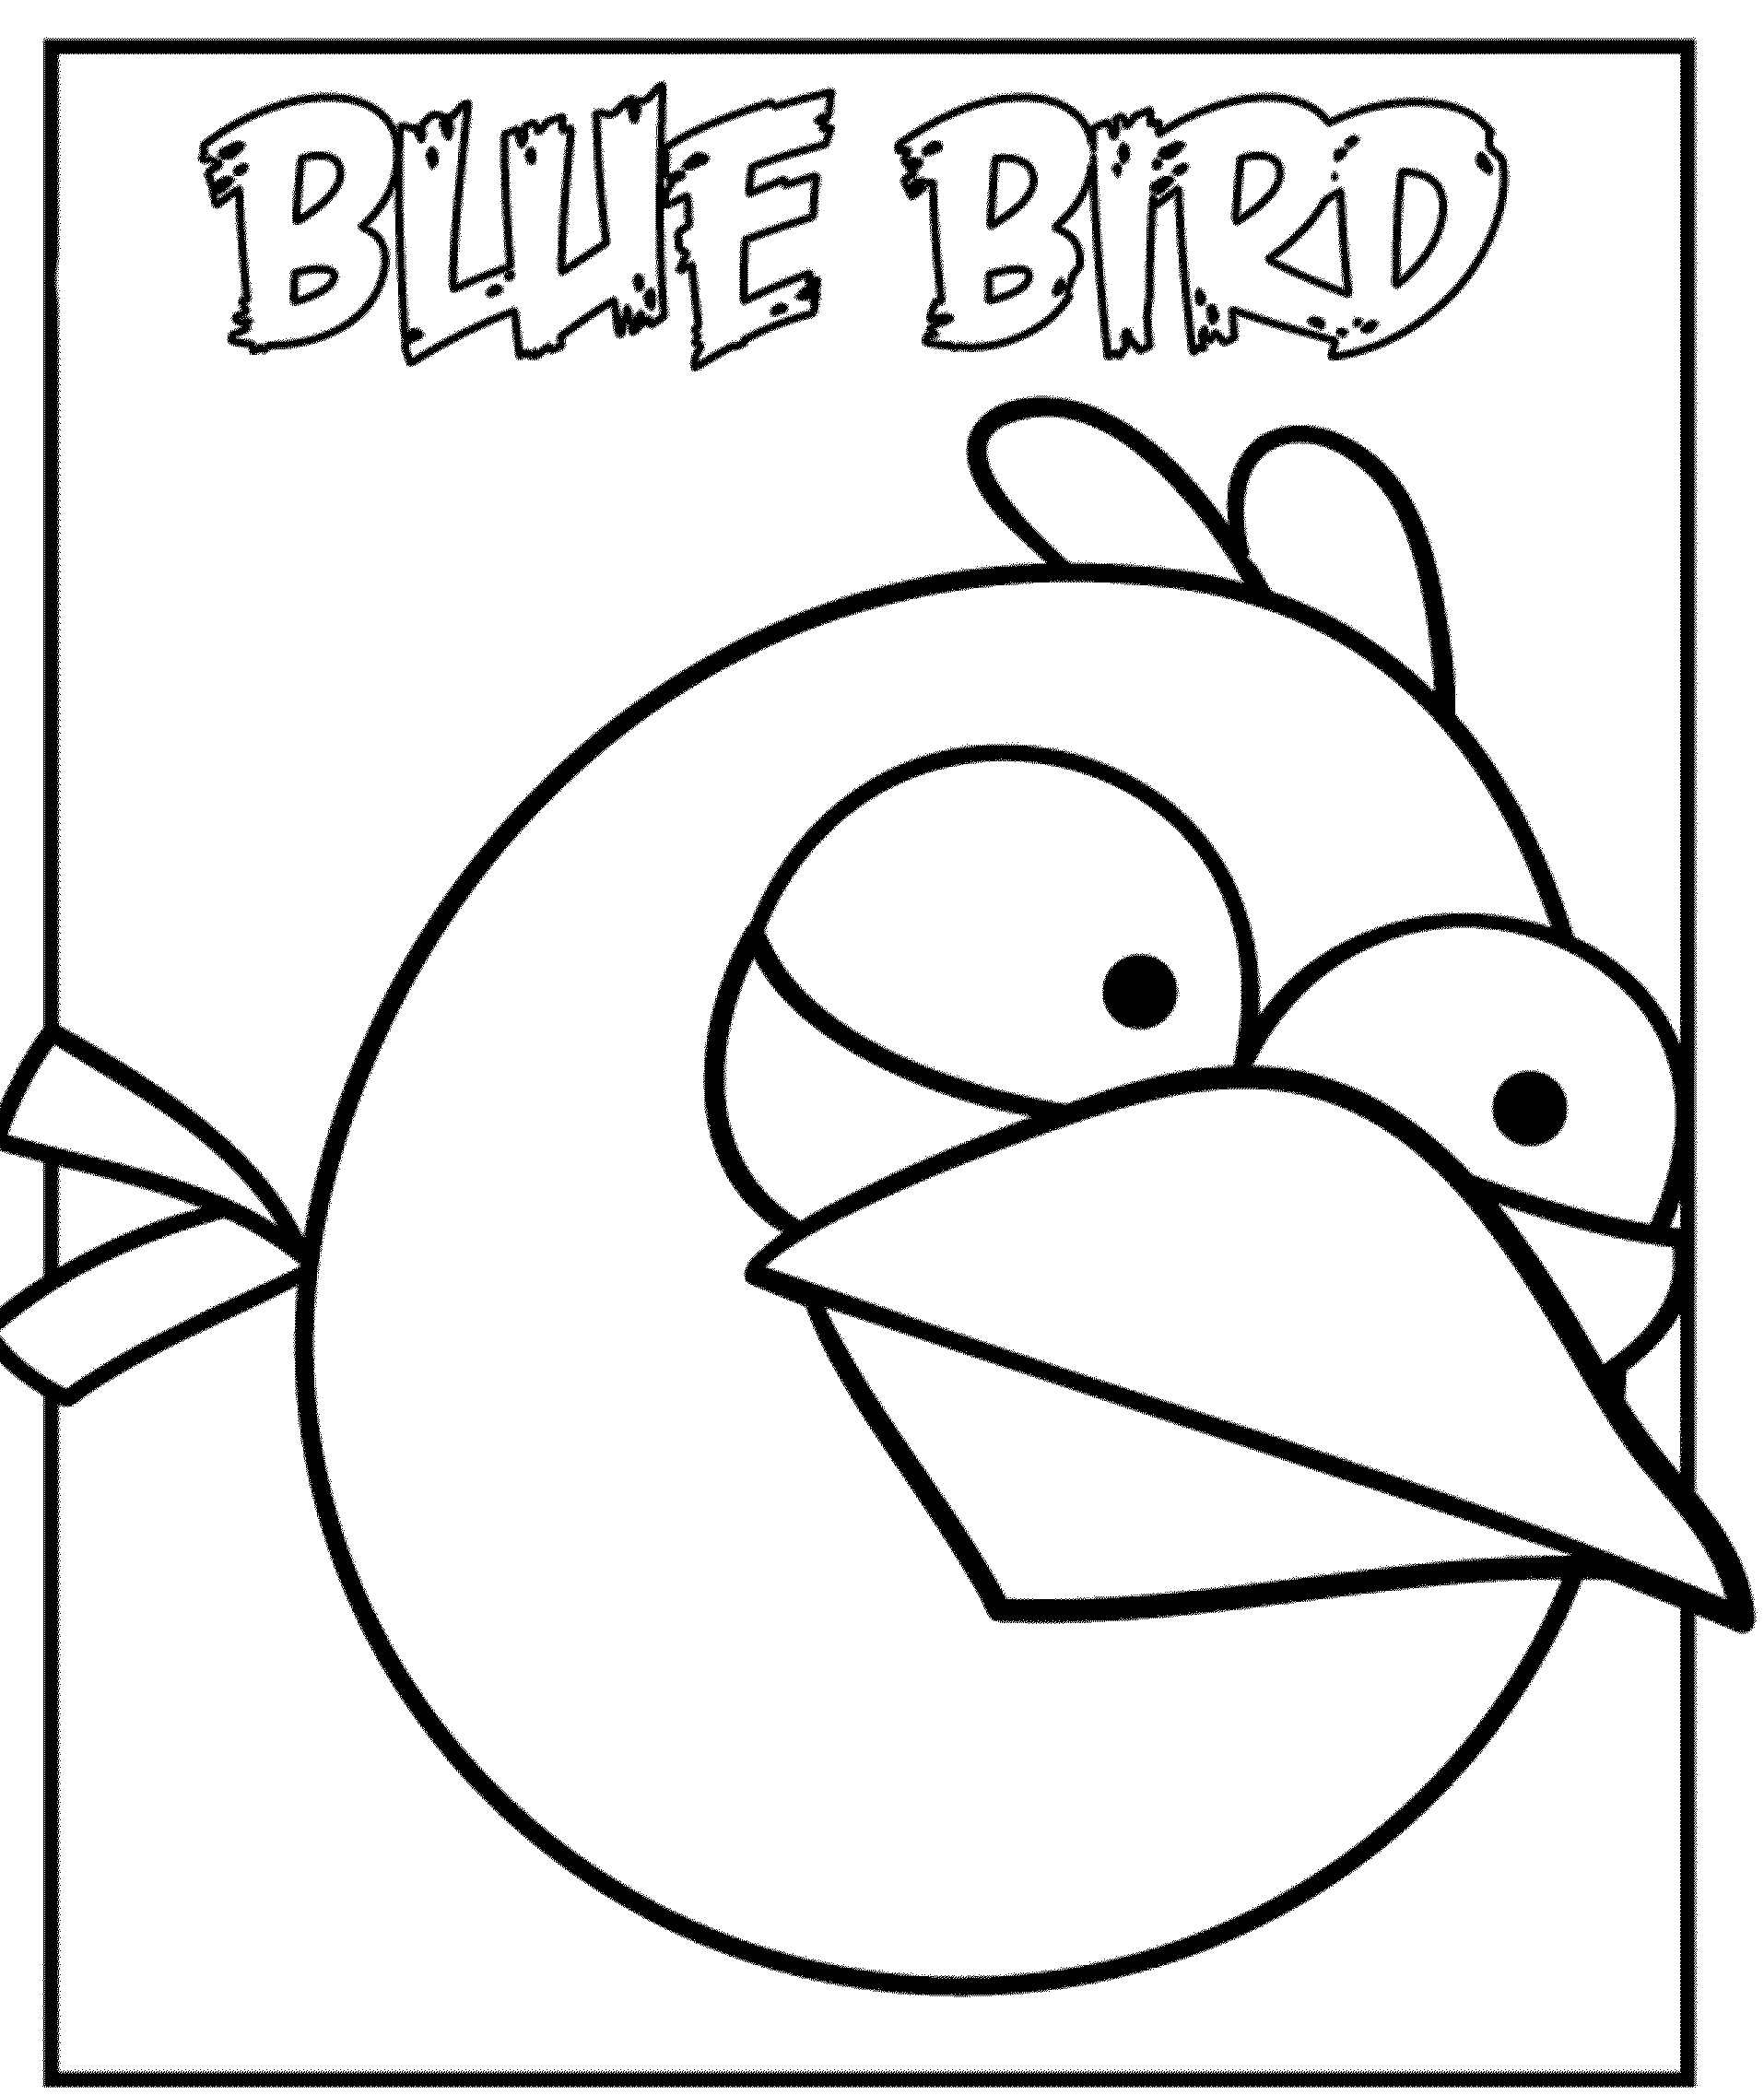 Angry birds coloring pages blue bird for Angry birds coloring pages for learning colors